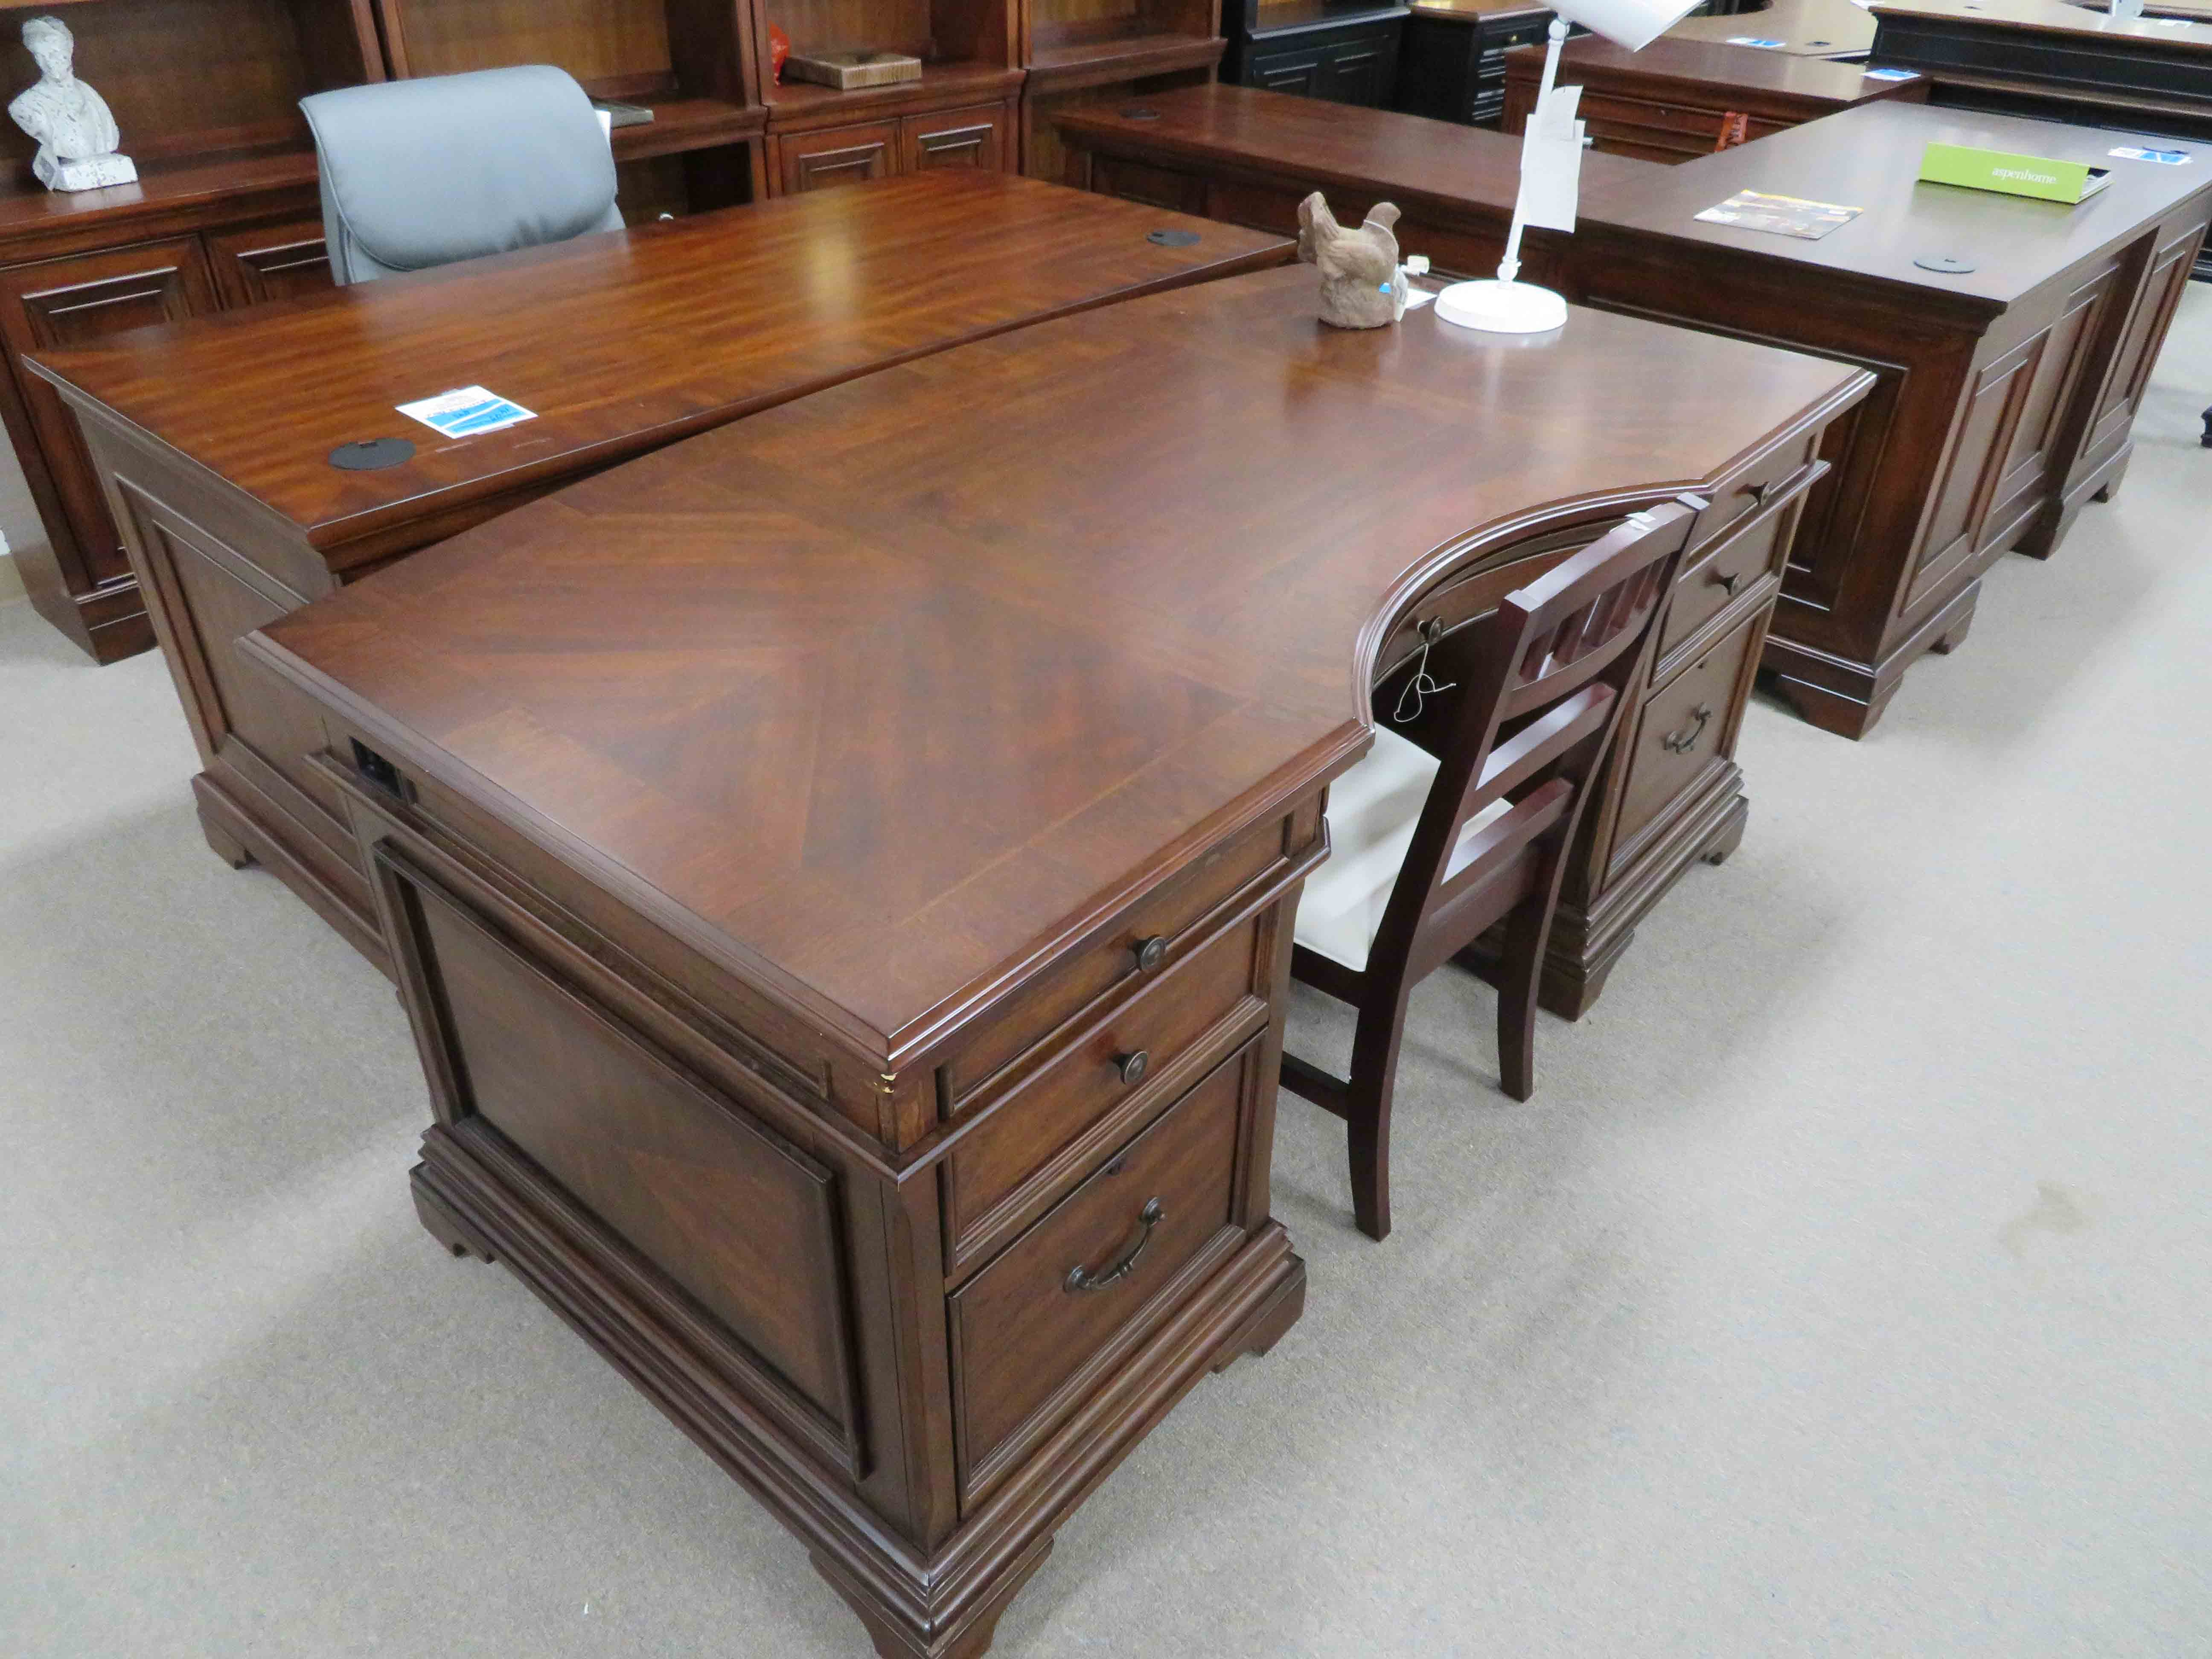 How we buy discount furniture in raleigh nc for Affordable furniture raleigh nc